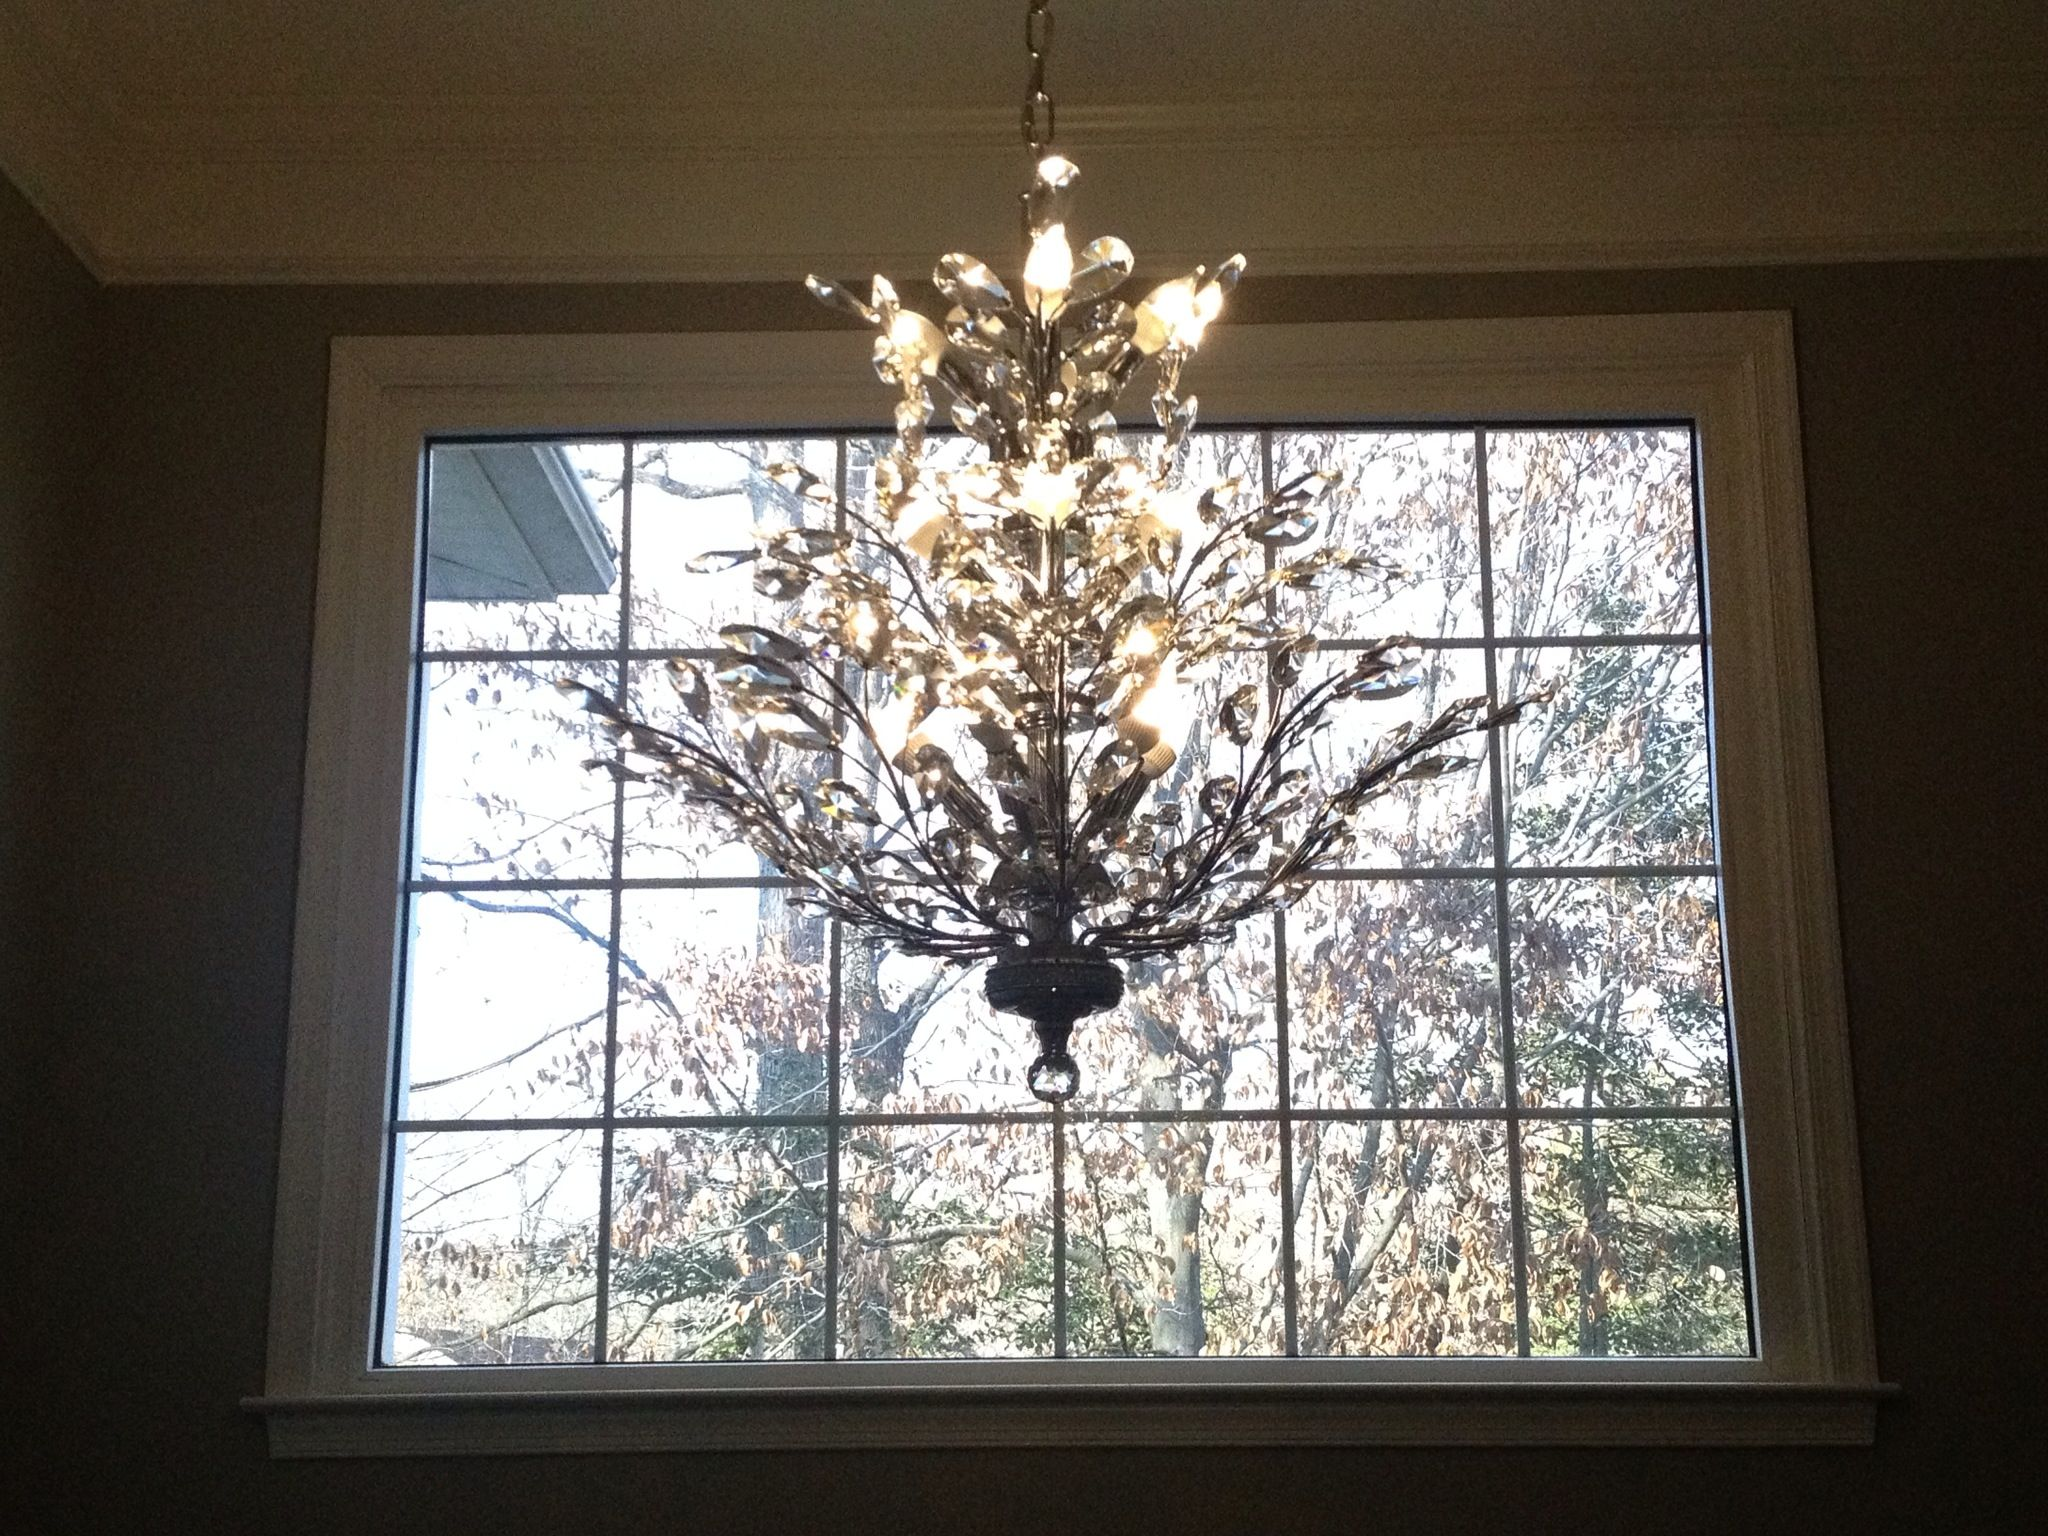 Foyer Chandelier Window : Foyer chandelier branch of light design joshua marshall home